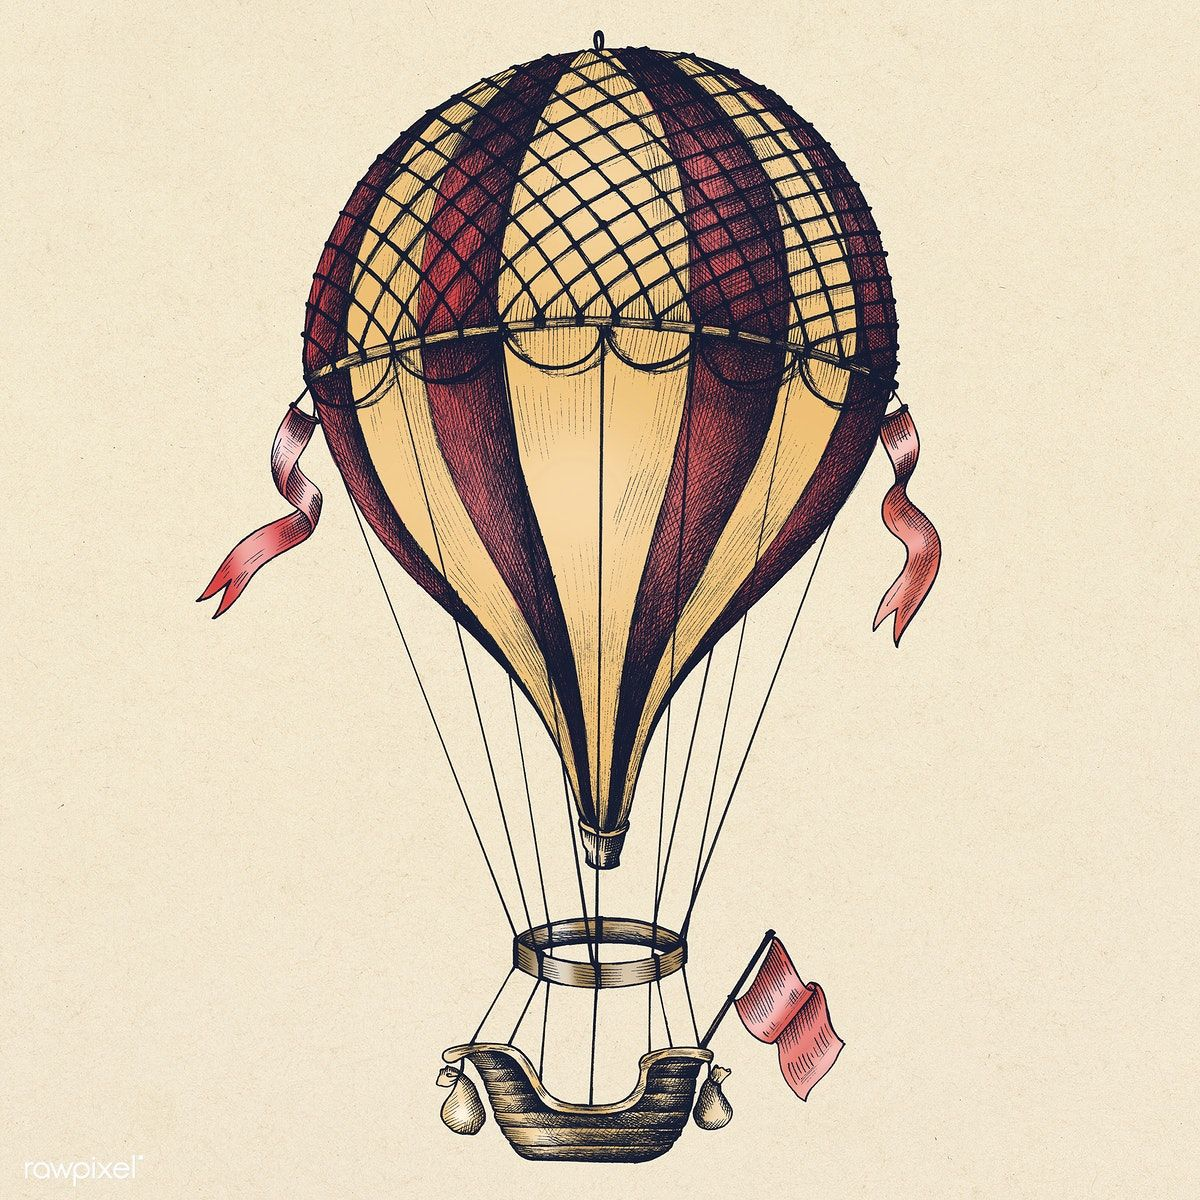 Download premium illustration of Hot air balloon vintage